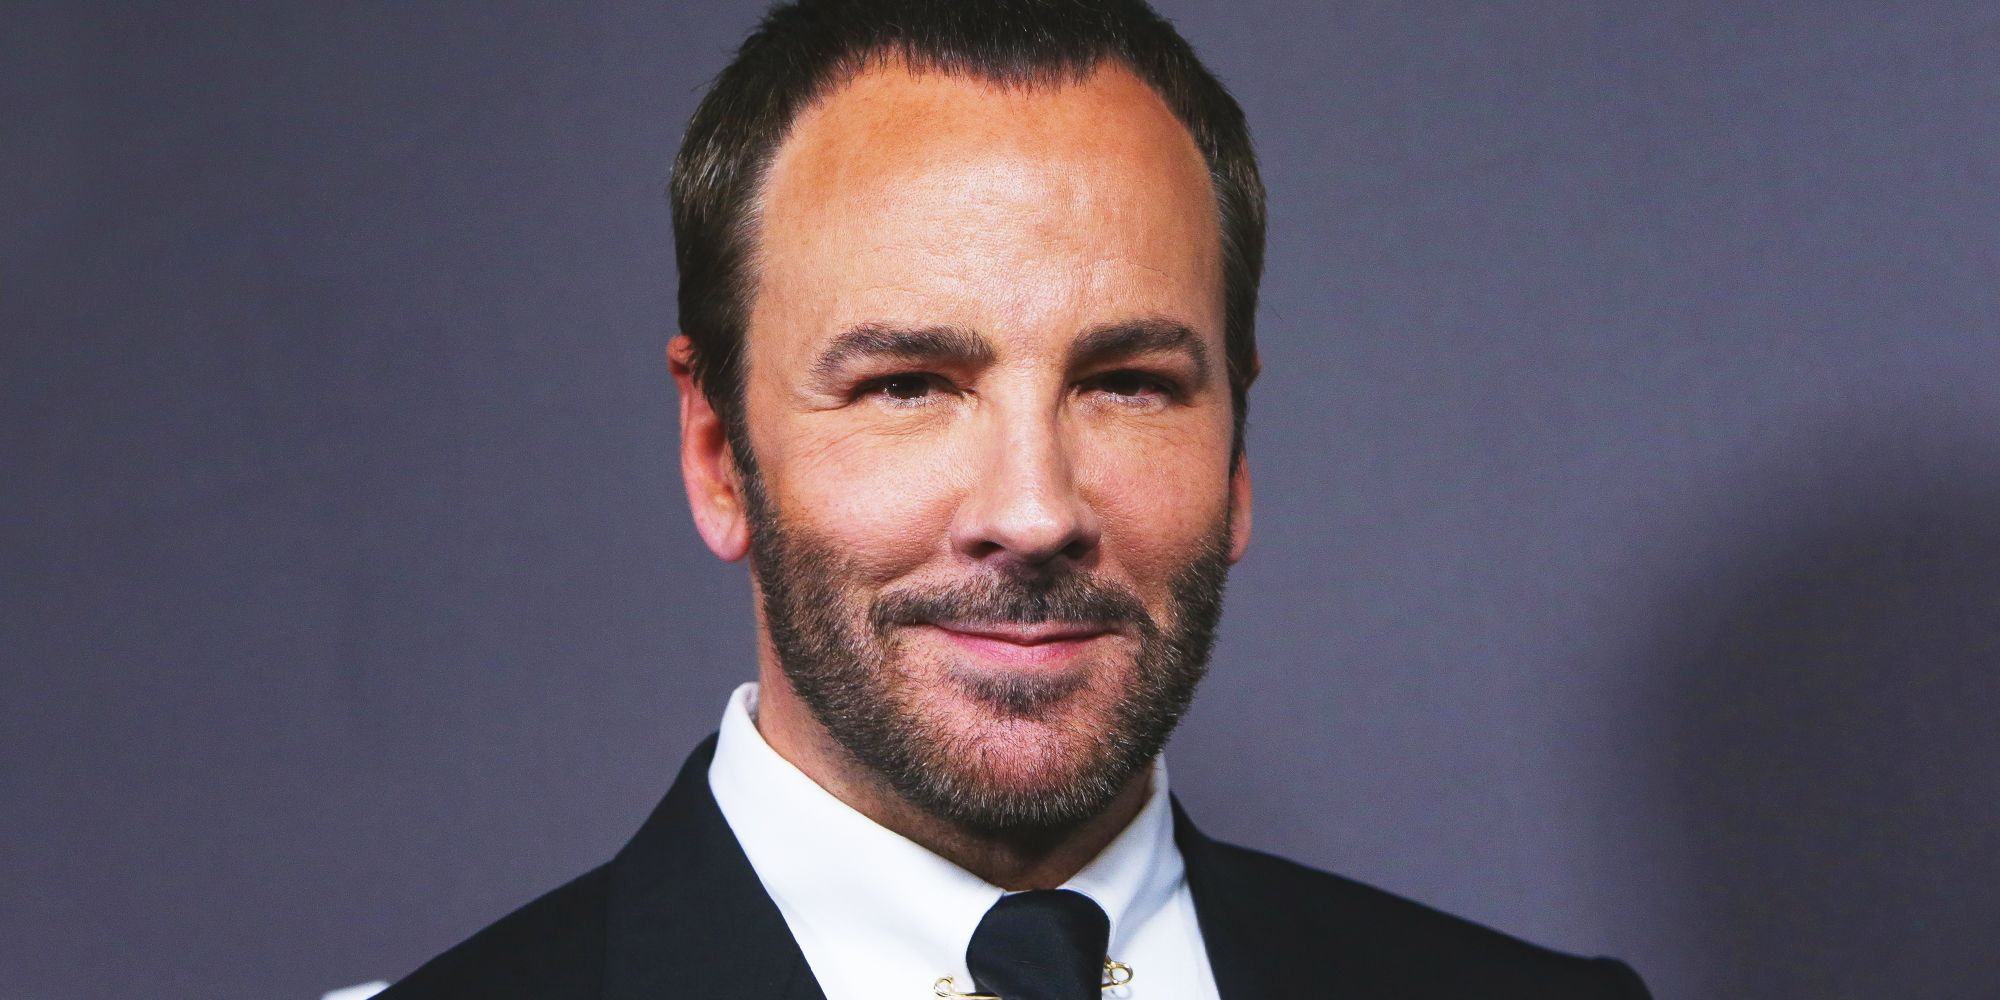 704d464351a Tom Ford Sets Record Straight About Dressing Melania Trump